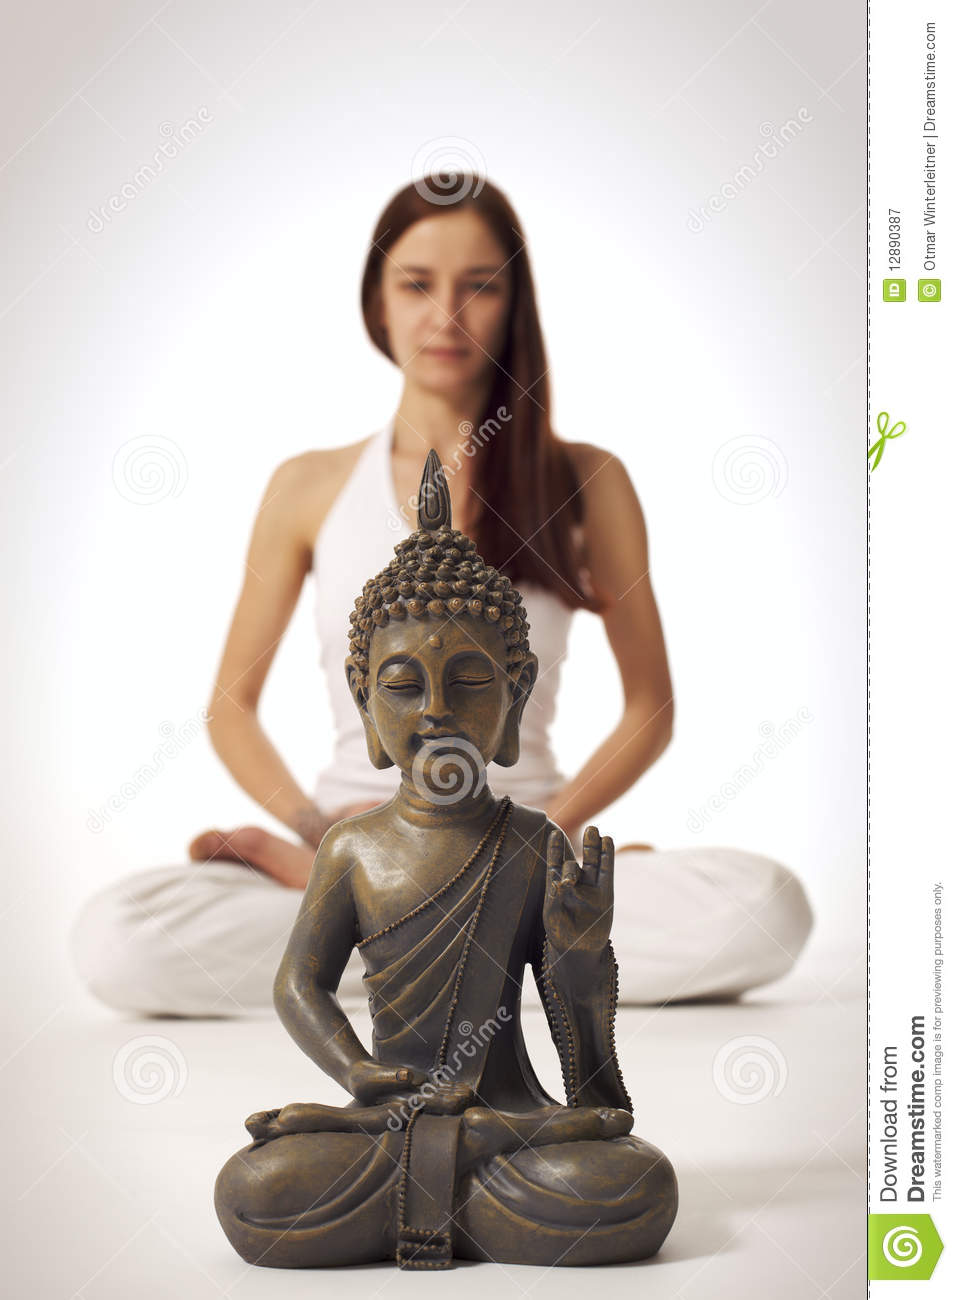 buddhist single women in cavour Connect with buddhist singles who share your core values  our compatibility matching system® matches single buddhist men and women based on 29 dimensions of .